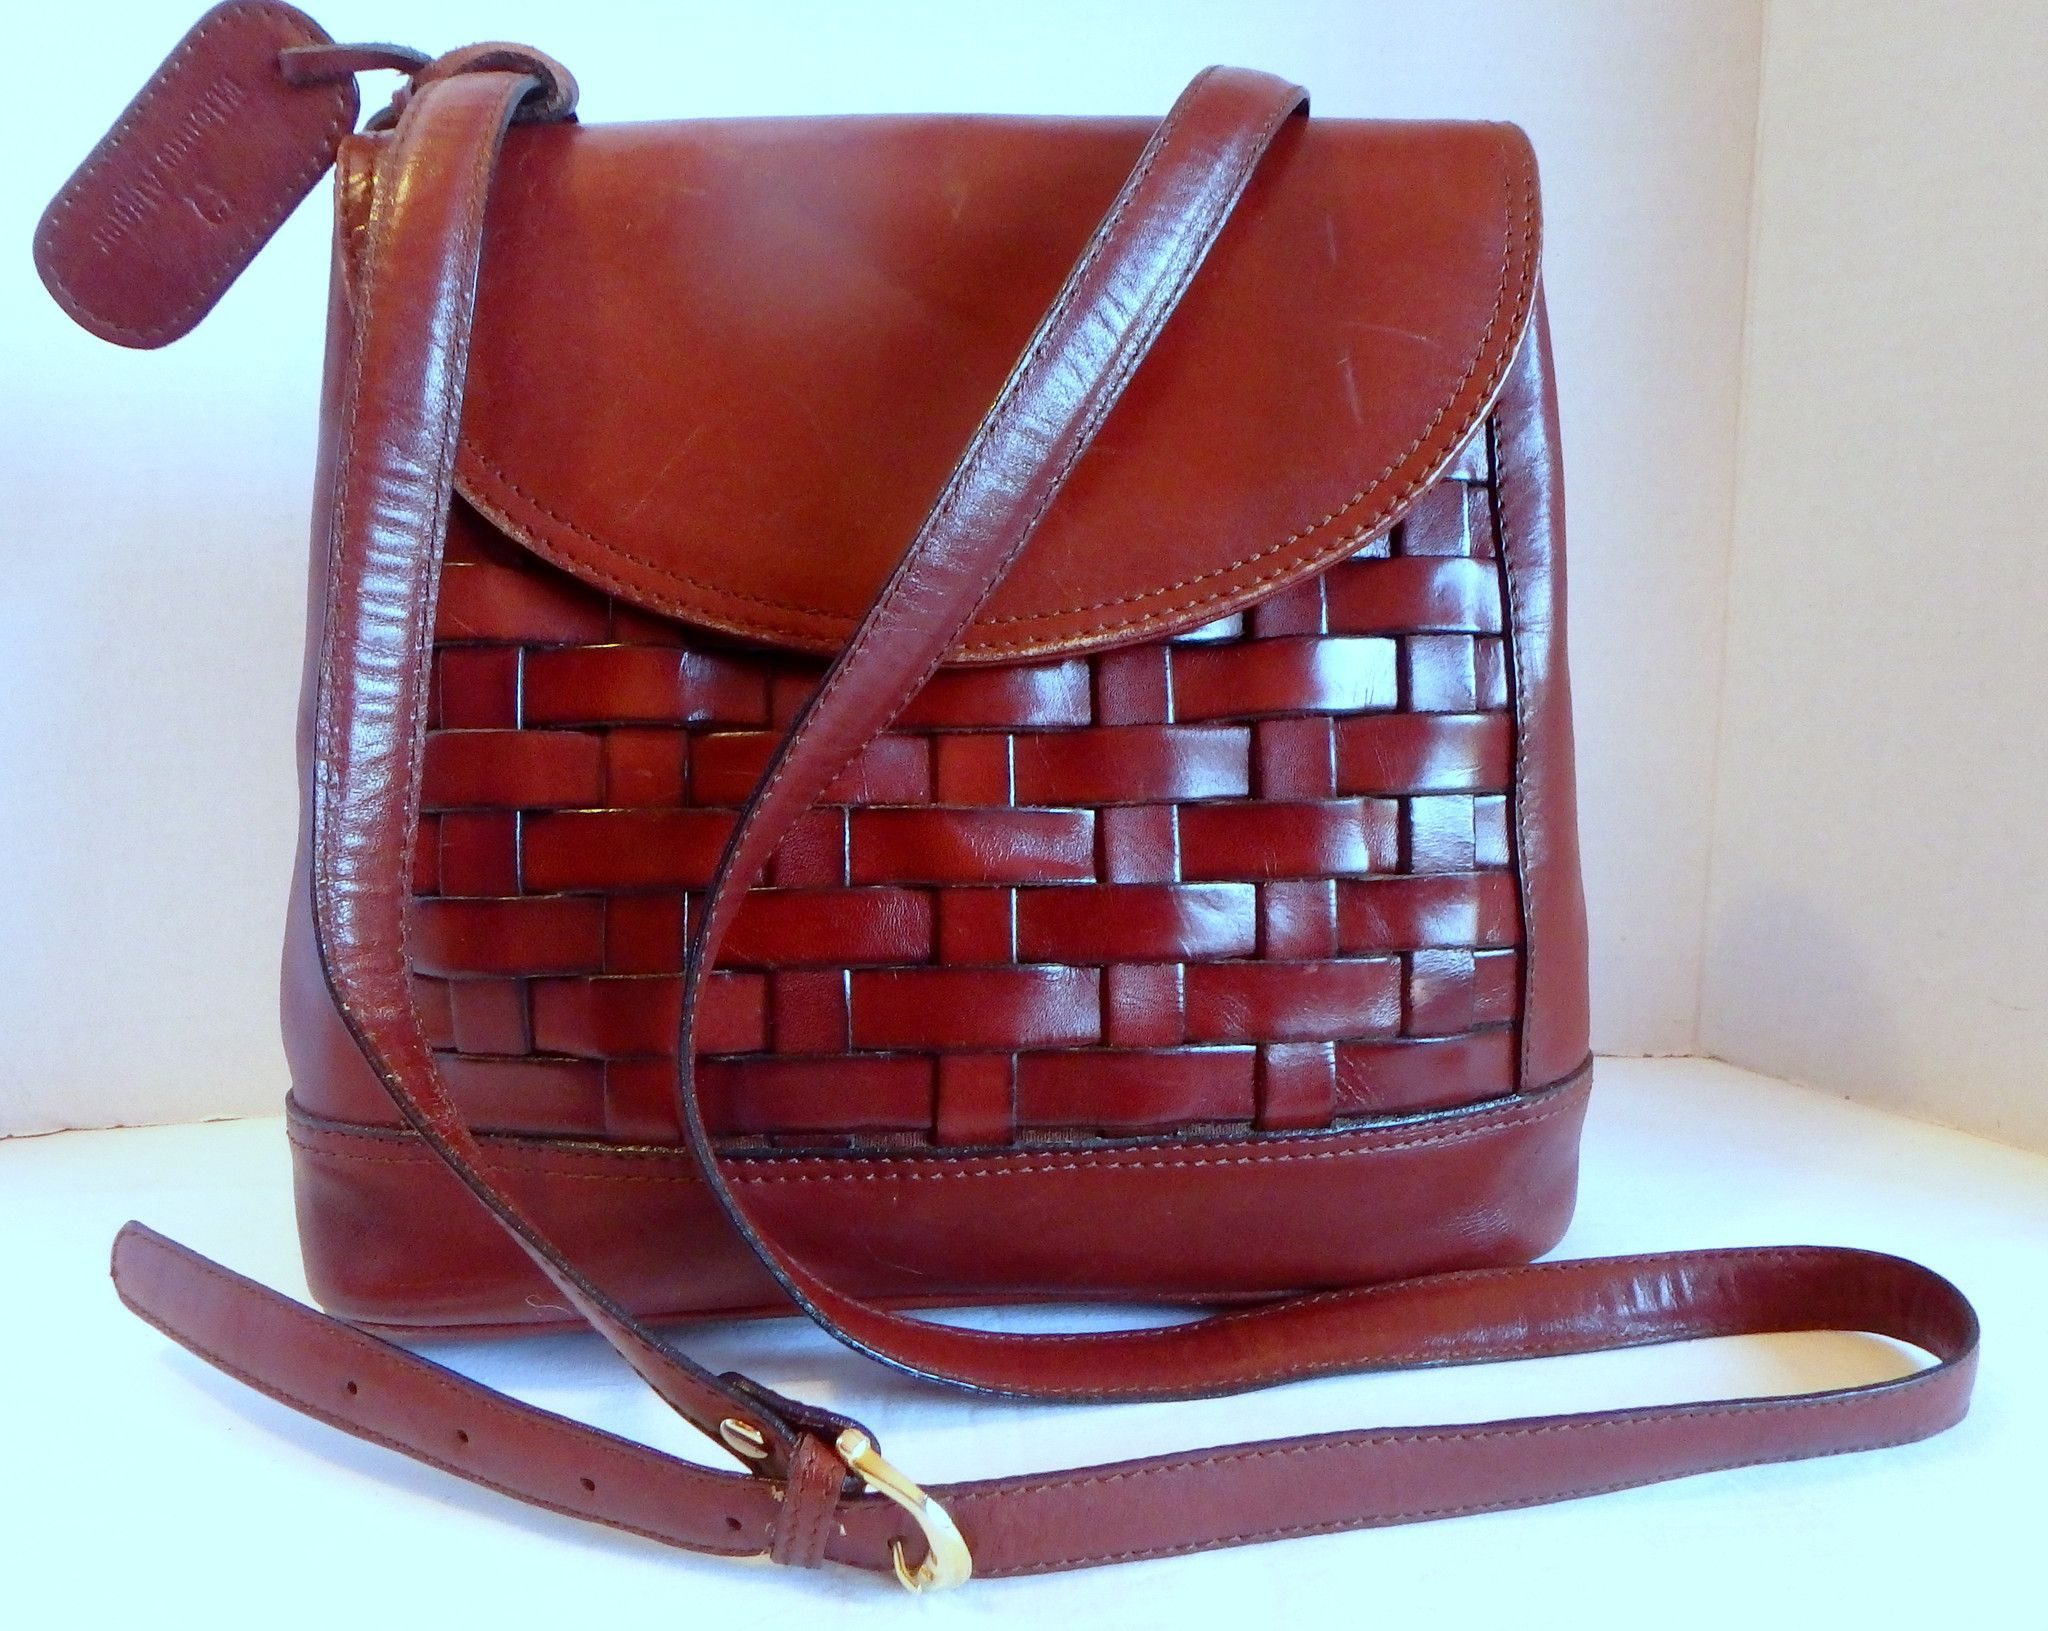 Etienne Aigner Vintage Brown Woven Leather Shoulder Handbag Purse